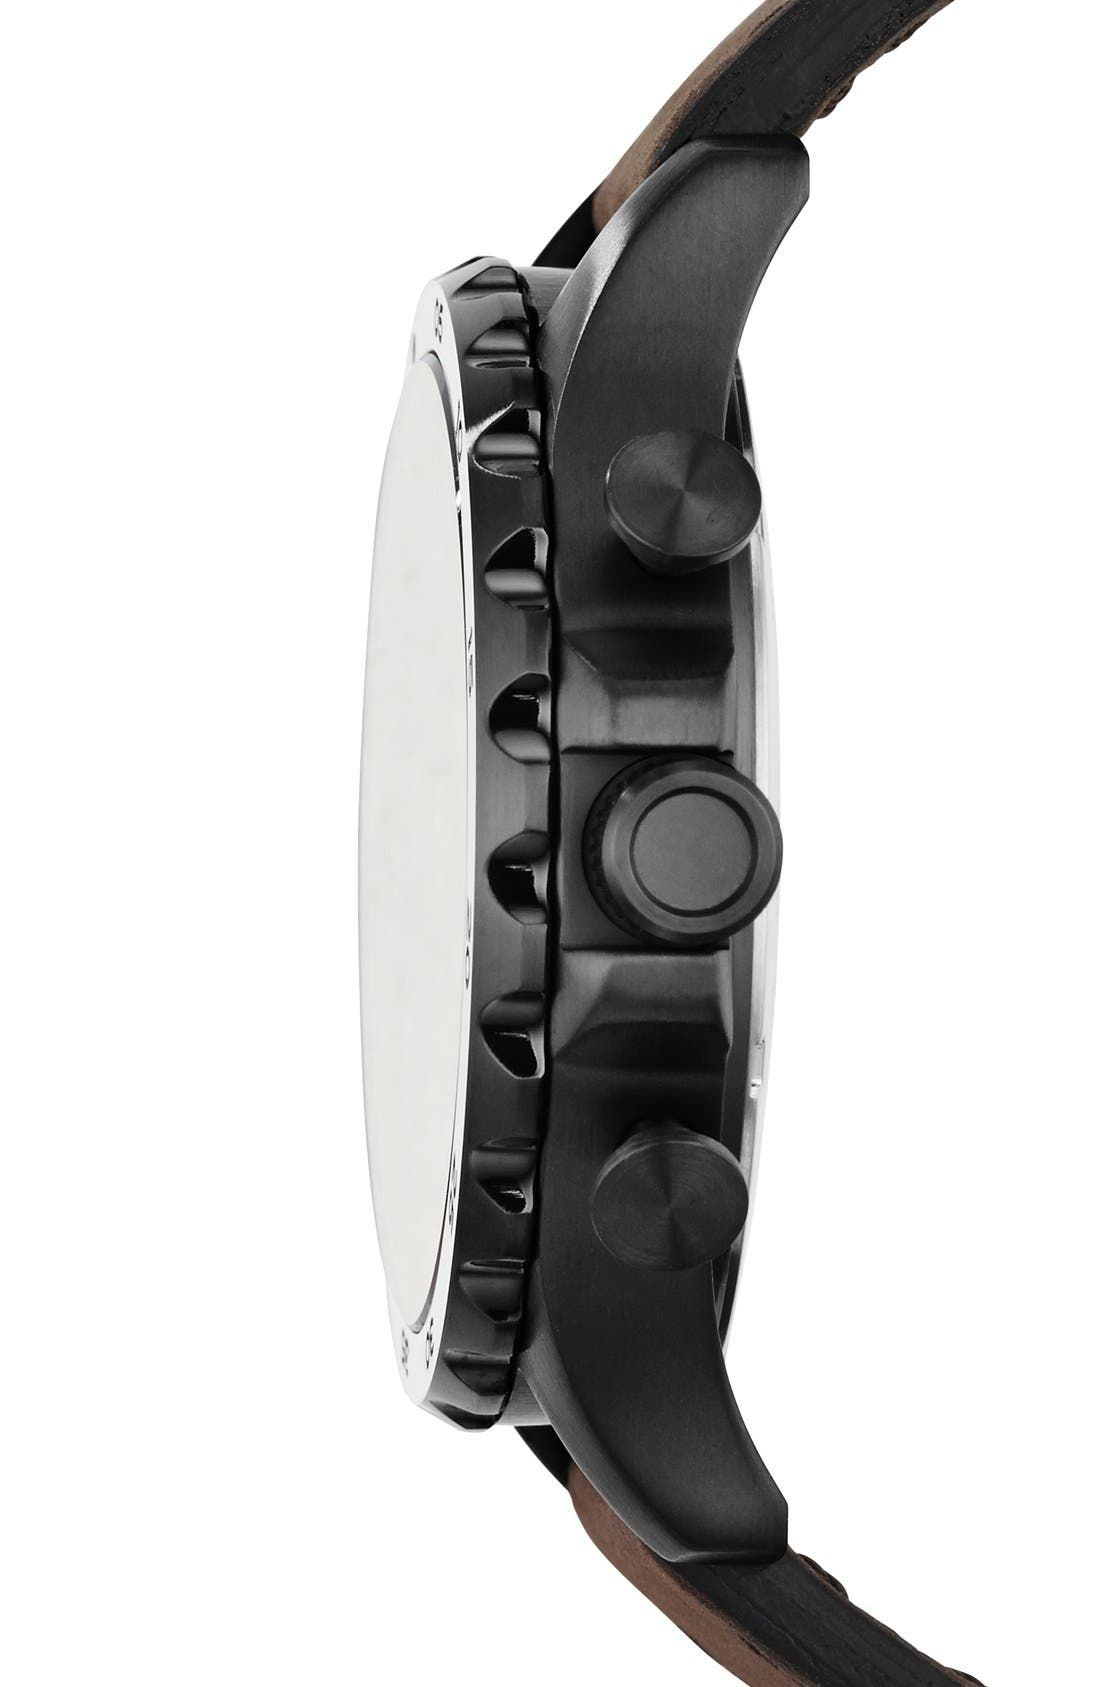 FOSSIL, 'Nate IP' Chronograph Watch, 50mm, Alternate thumbnail 2, color, BROWN/ BLACK